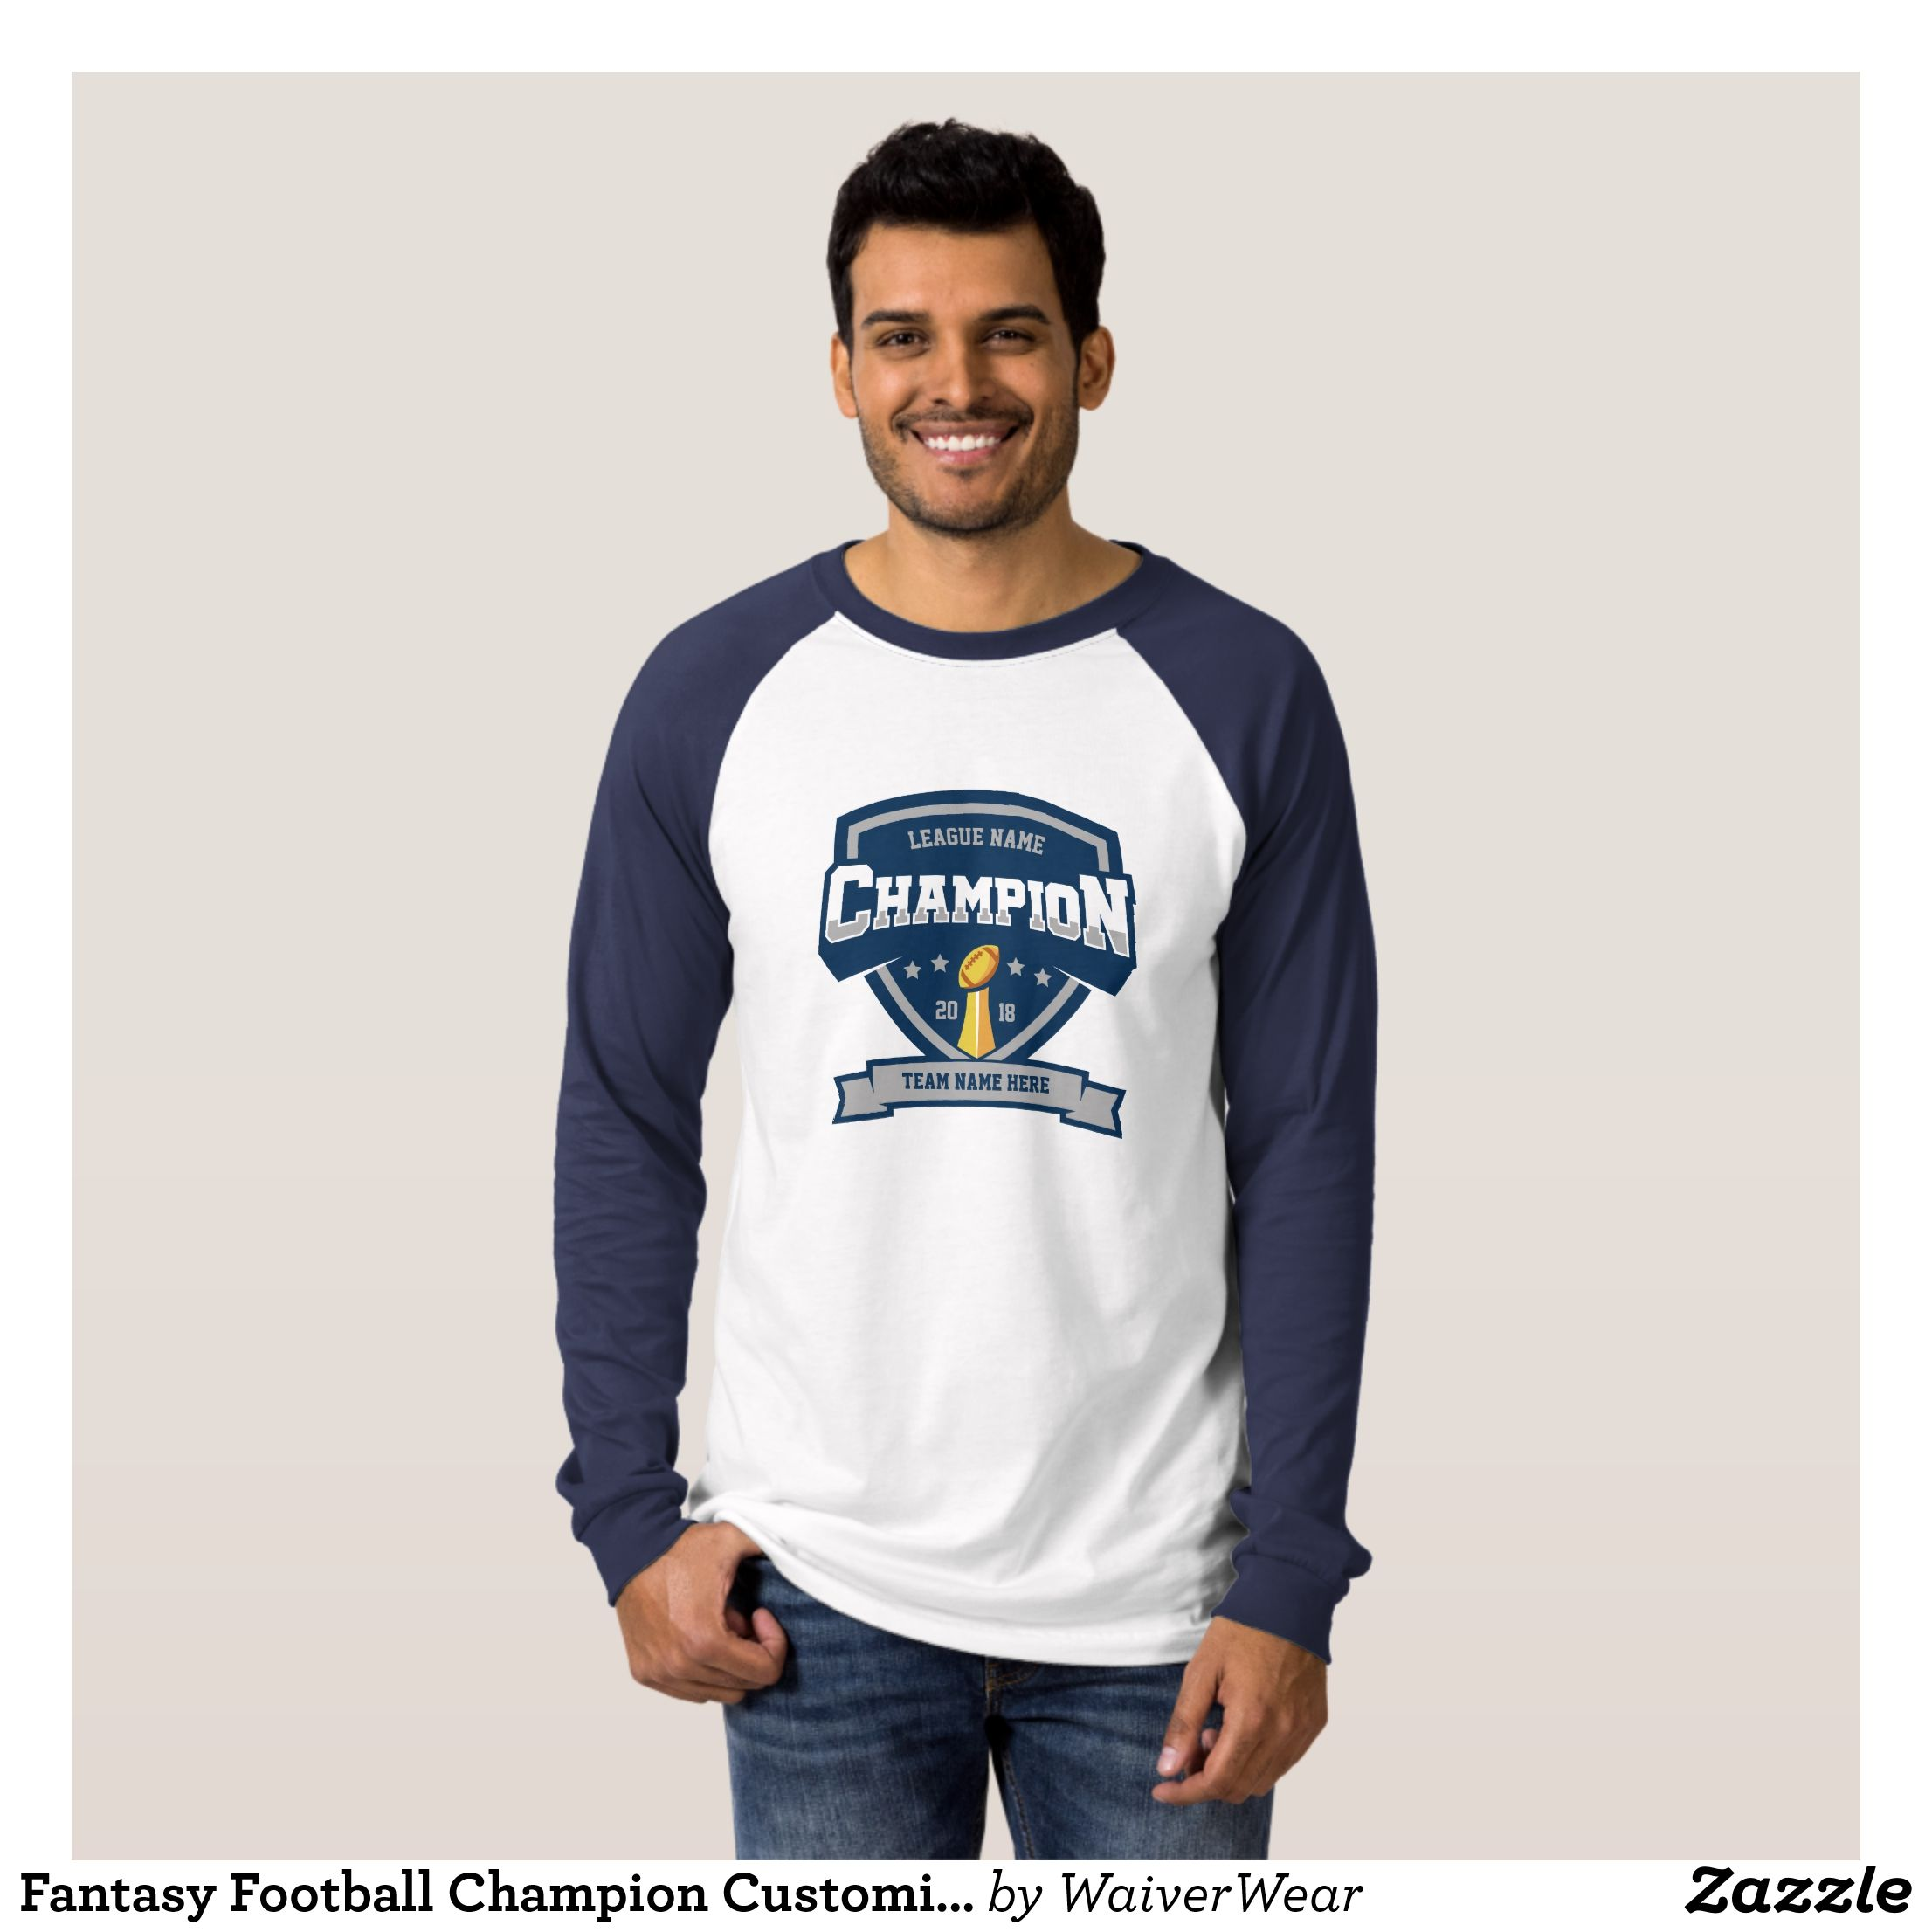 1c0a19453 Fantasy Football Champion Customizable T-Shirt - Heavyweight Pre-Shrunk  Shirts By Talented Fashion   Graphic Designers -  sweatshirts  shirts   mensfashion ...